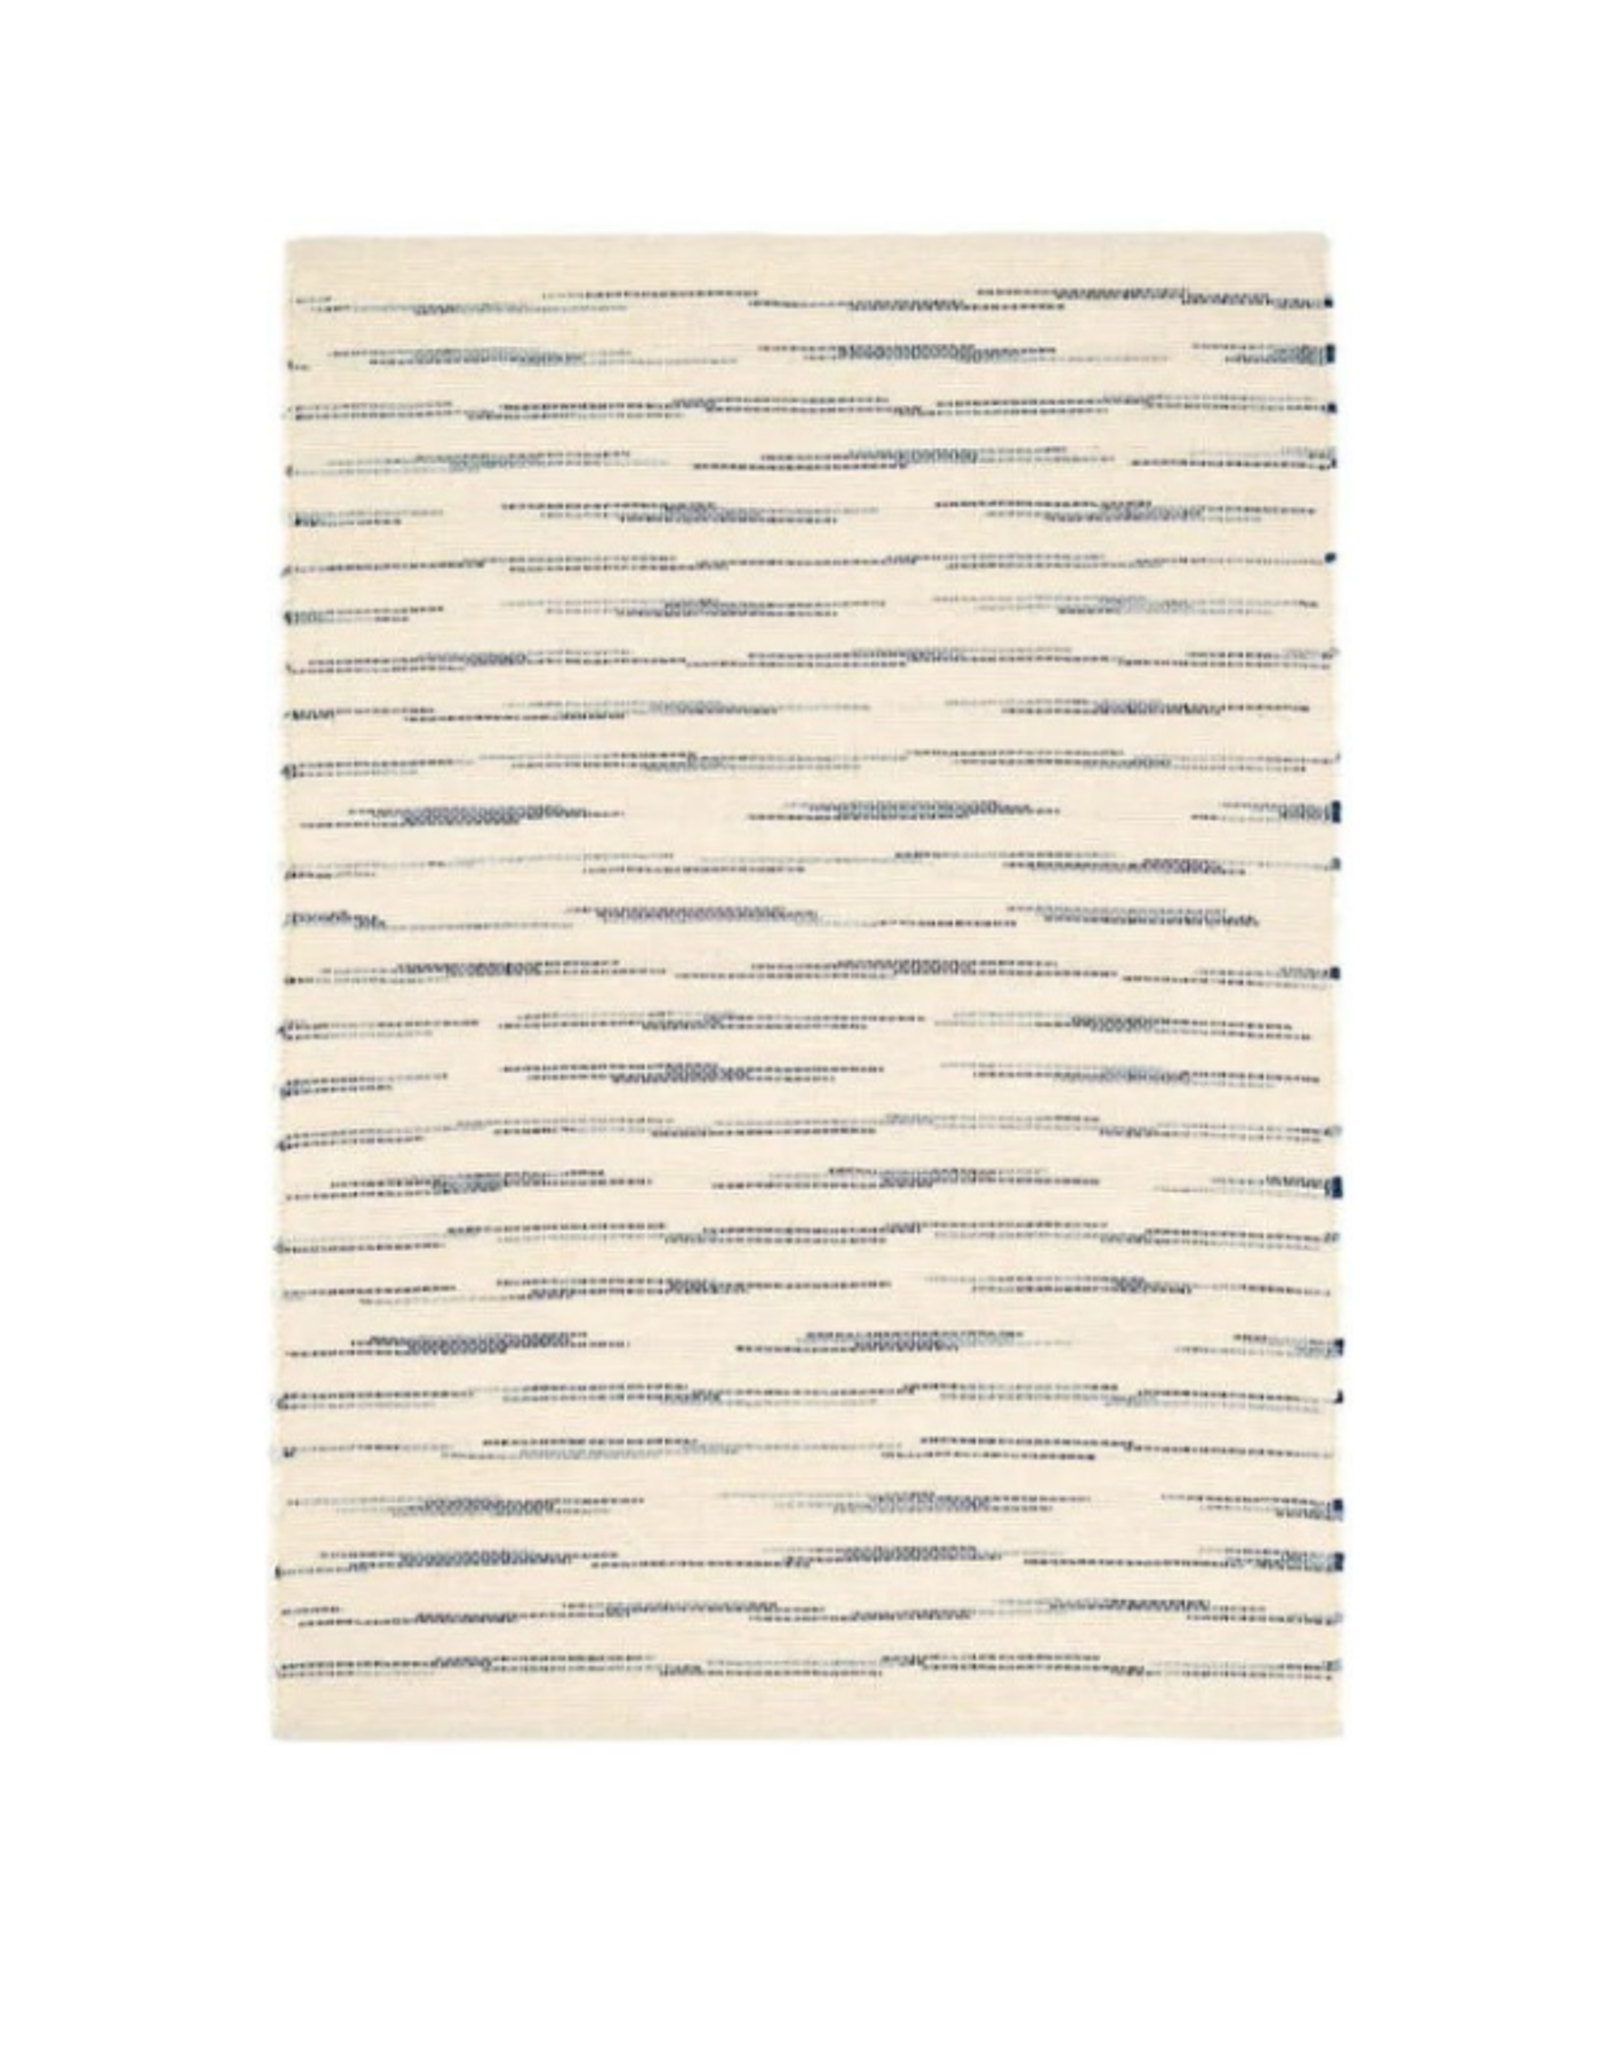 RUG SOLANA WOVEN WHITE COTTON WITH NAVY BLUE STRIPES RUNNER 2.5X8'